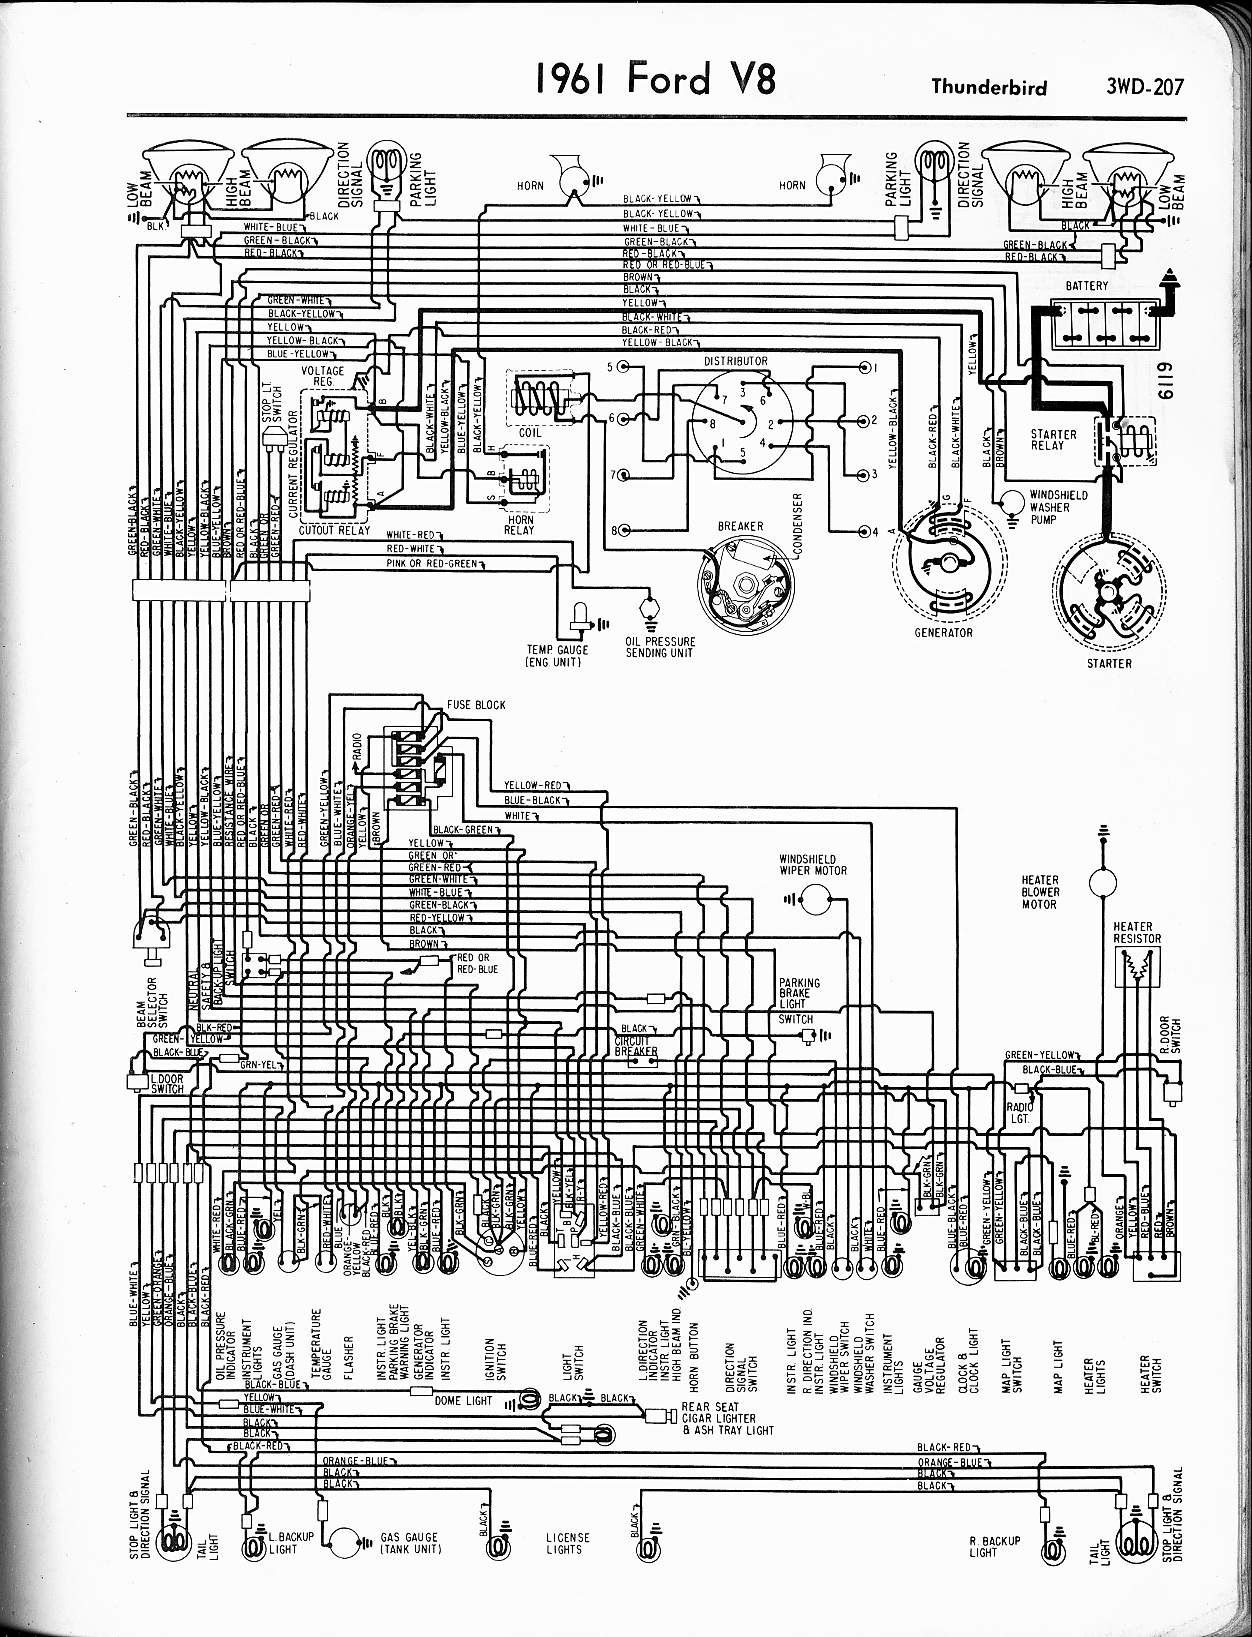 1961 Ford F250 Wiring Diagram Smart Diagrams 1975 U2022 Rh Msblog Co F 250